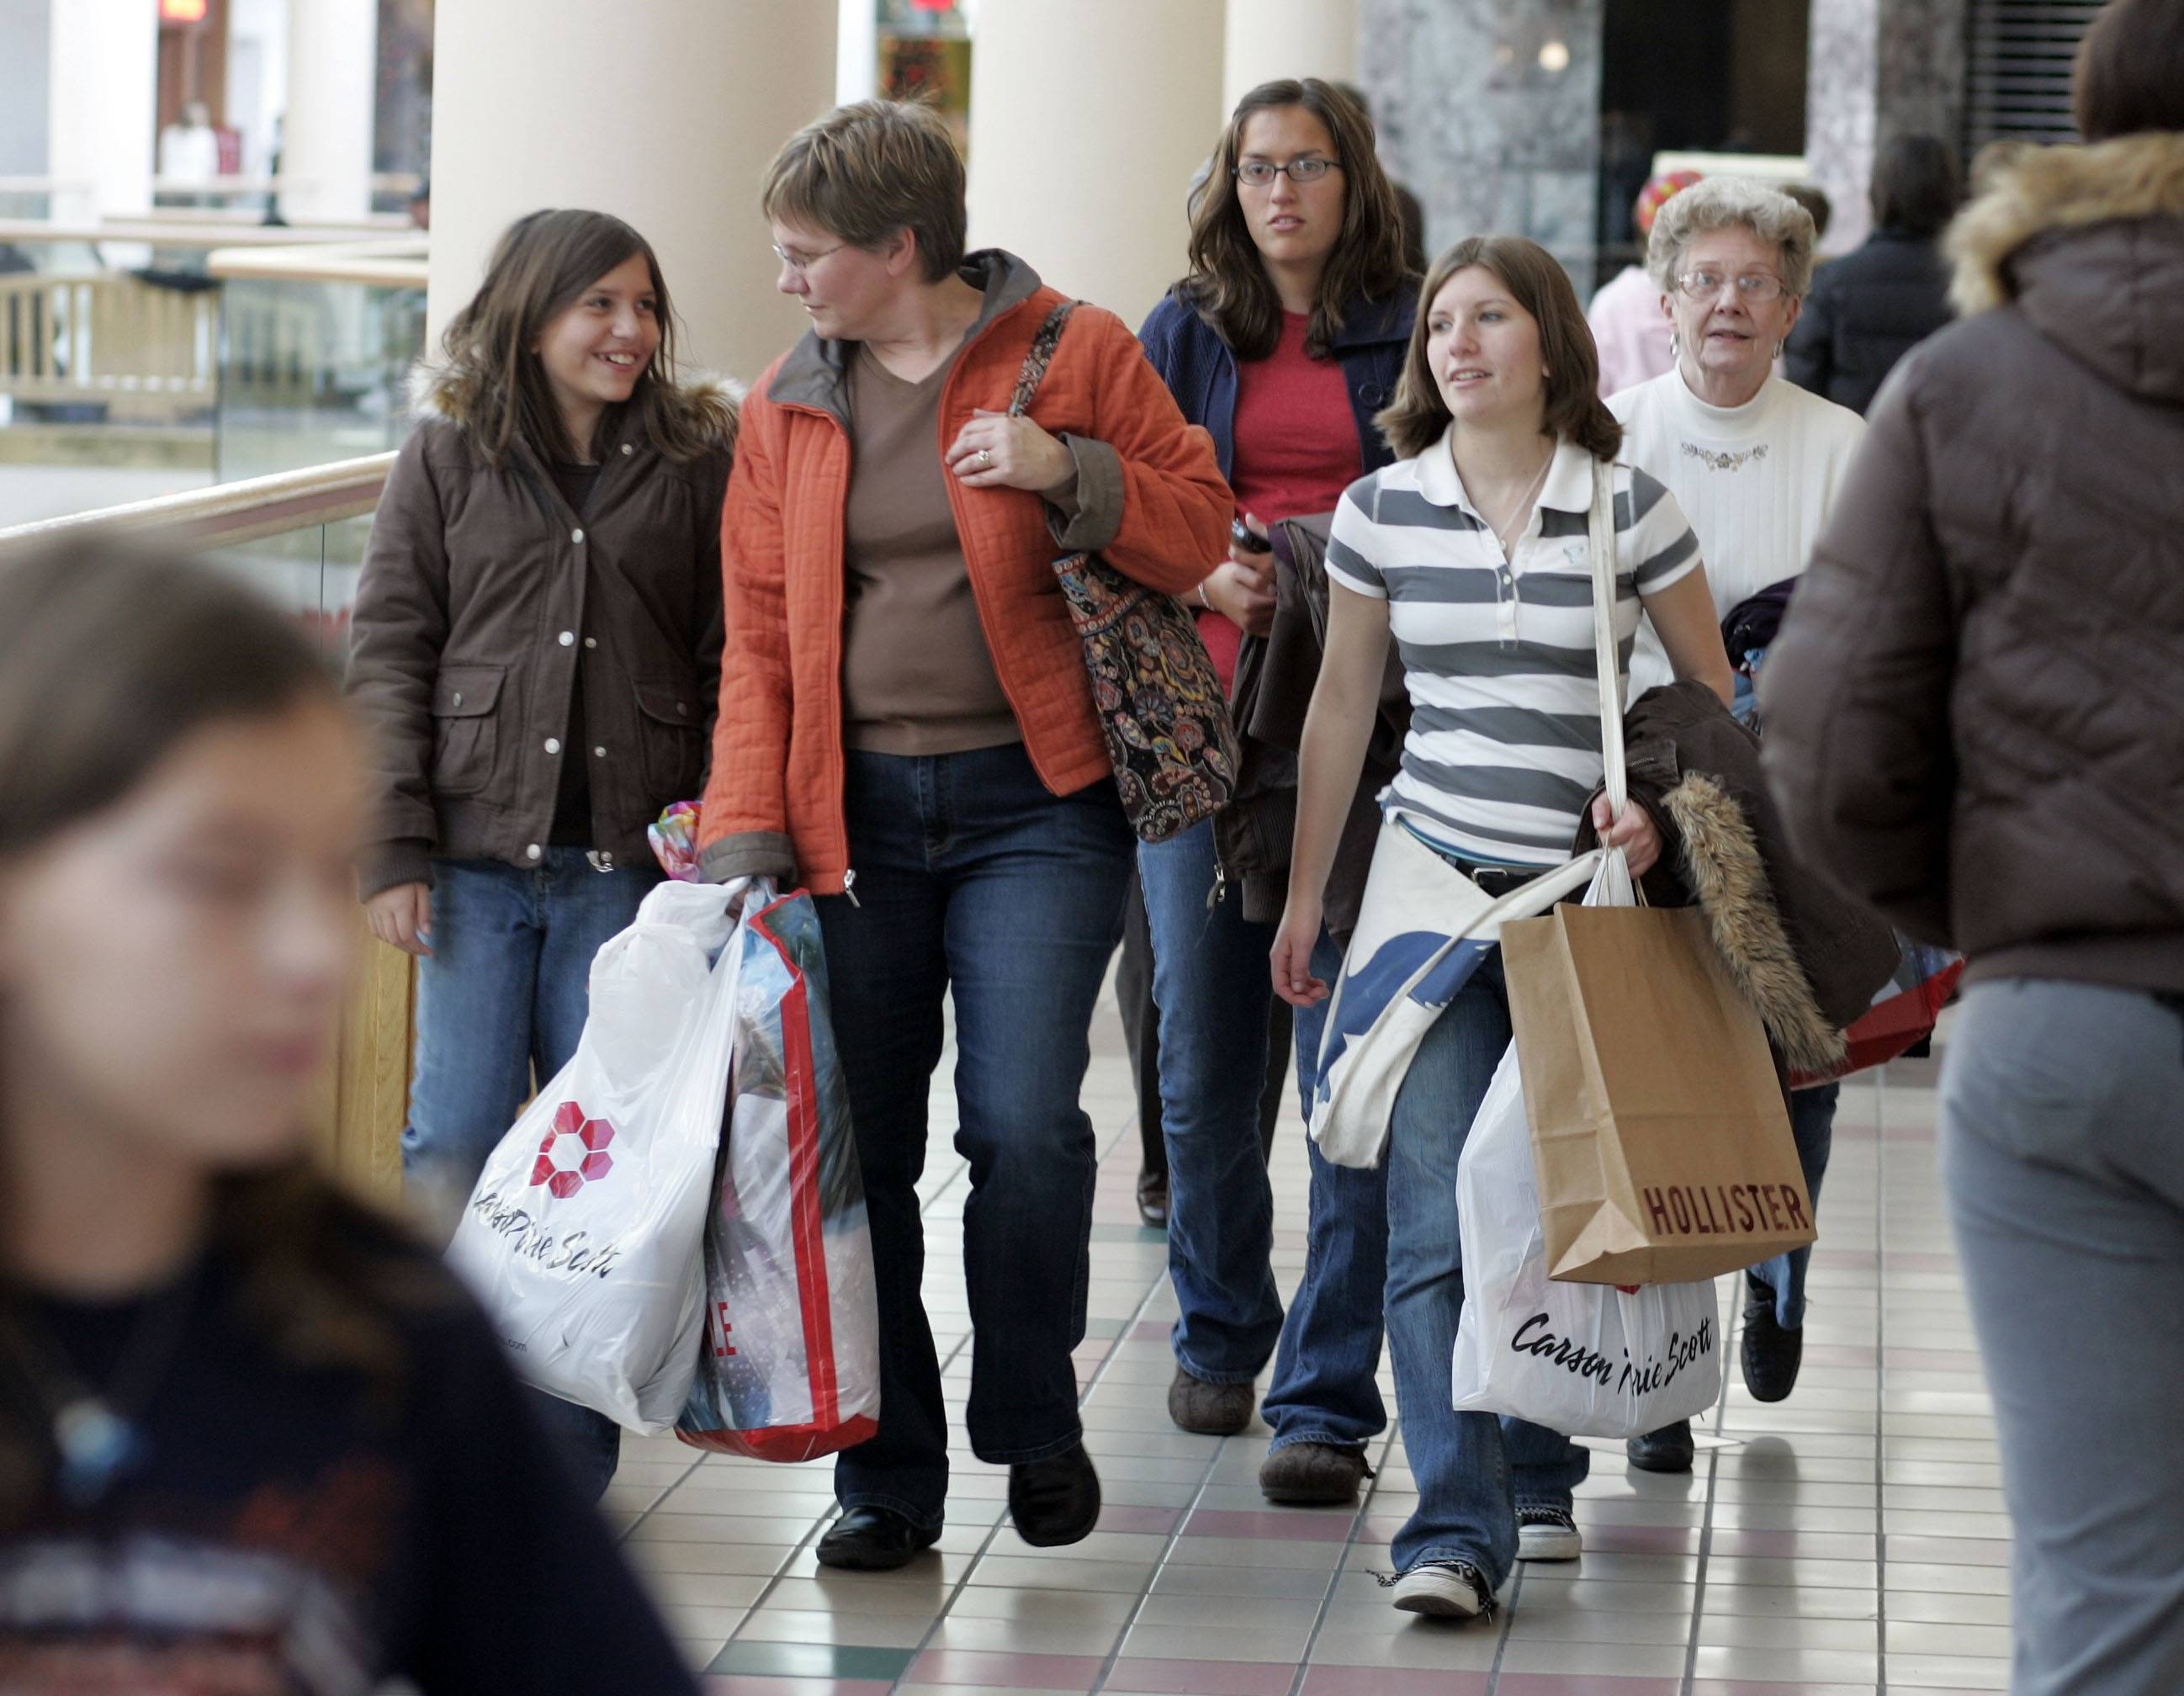 Shoppers carry their bags full of purchases as they make their way through Charlestowne Mall in St. Charles in 2007. When the mall opened 23 years ago it was a go-to place for shopping. Now it's being revamped at The Quad after several years of being virtually vacant.